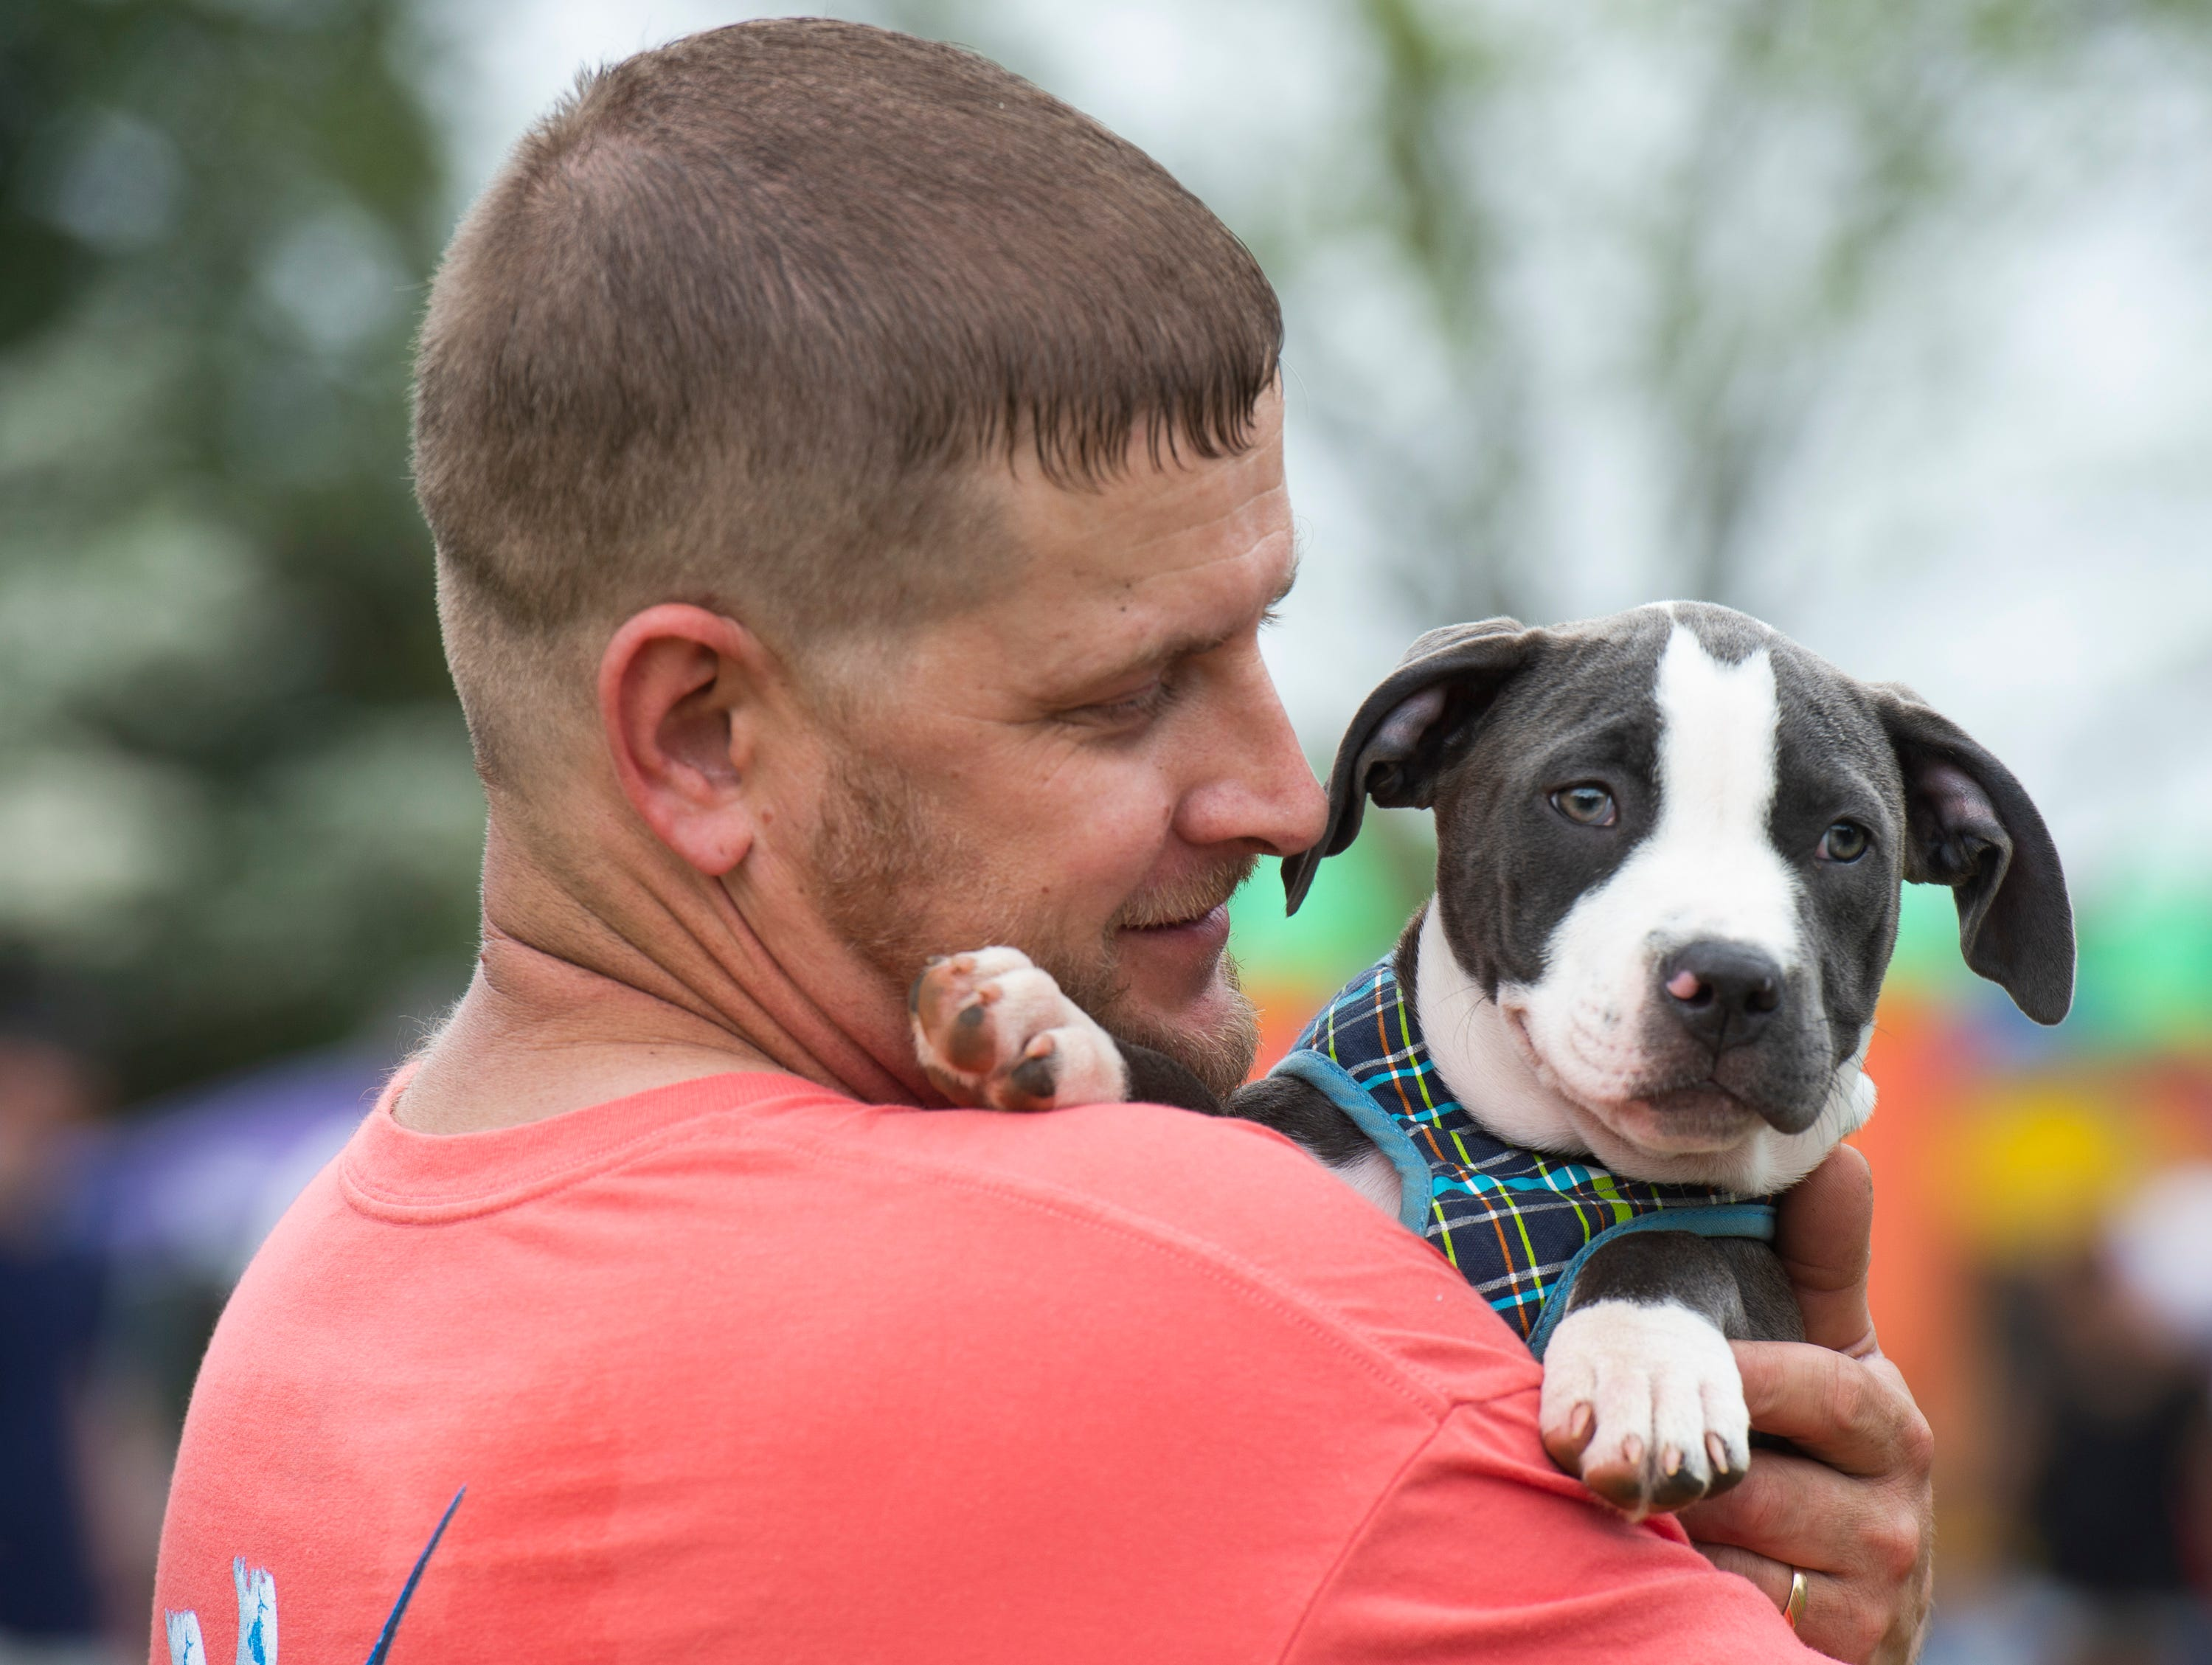 Michael Center, of Laurens, holds Nala, while competing in the cutest dog category during Paws for a Cause at Simpsonville City Park Saturday, April 13, 2019.